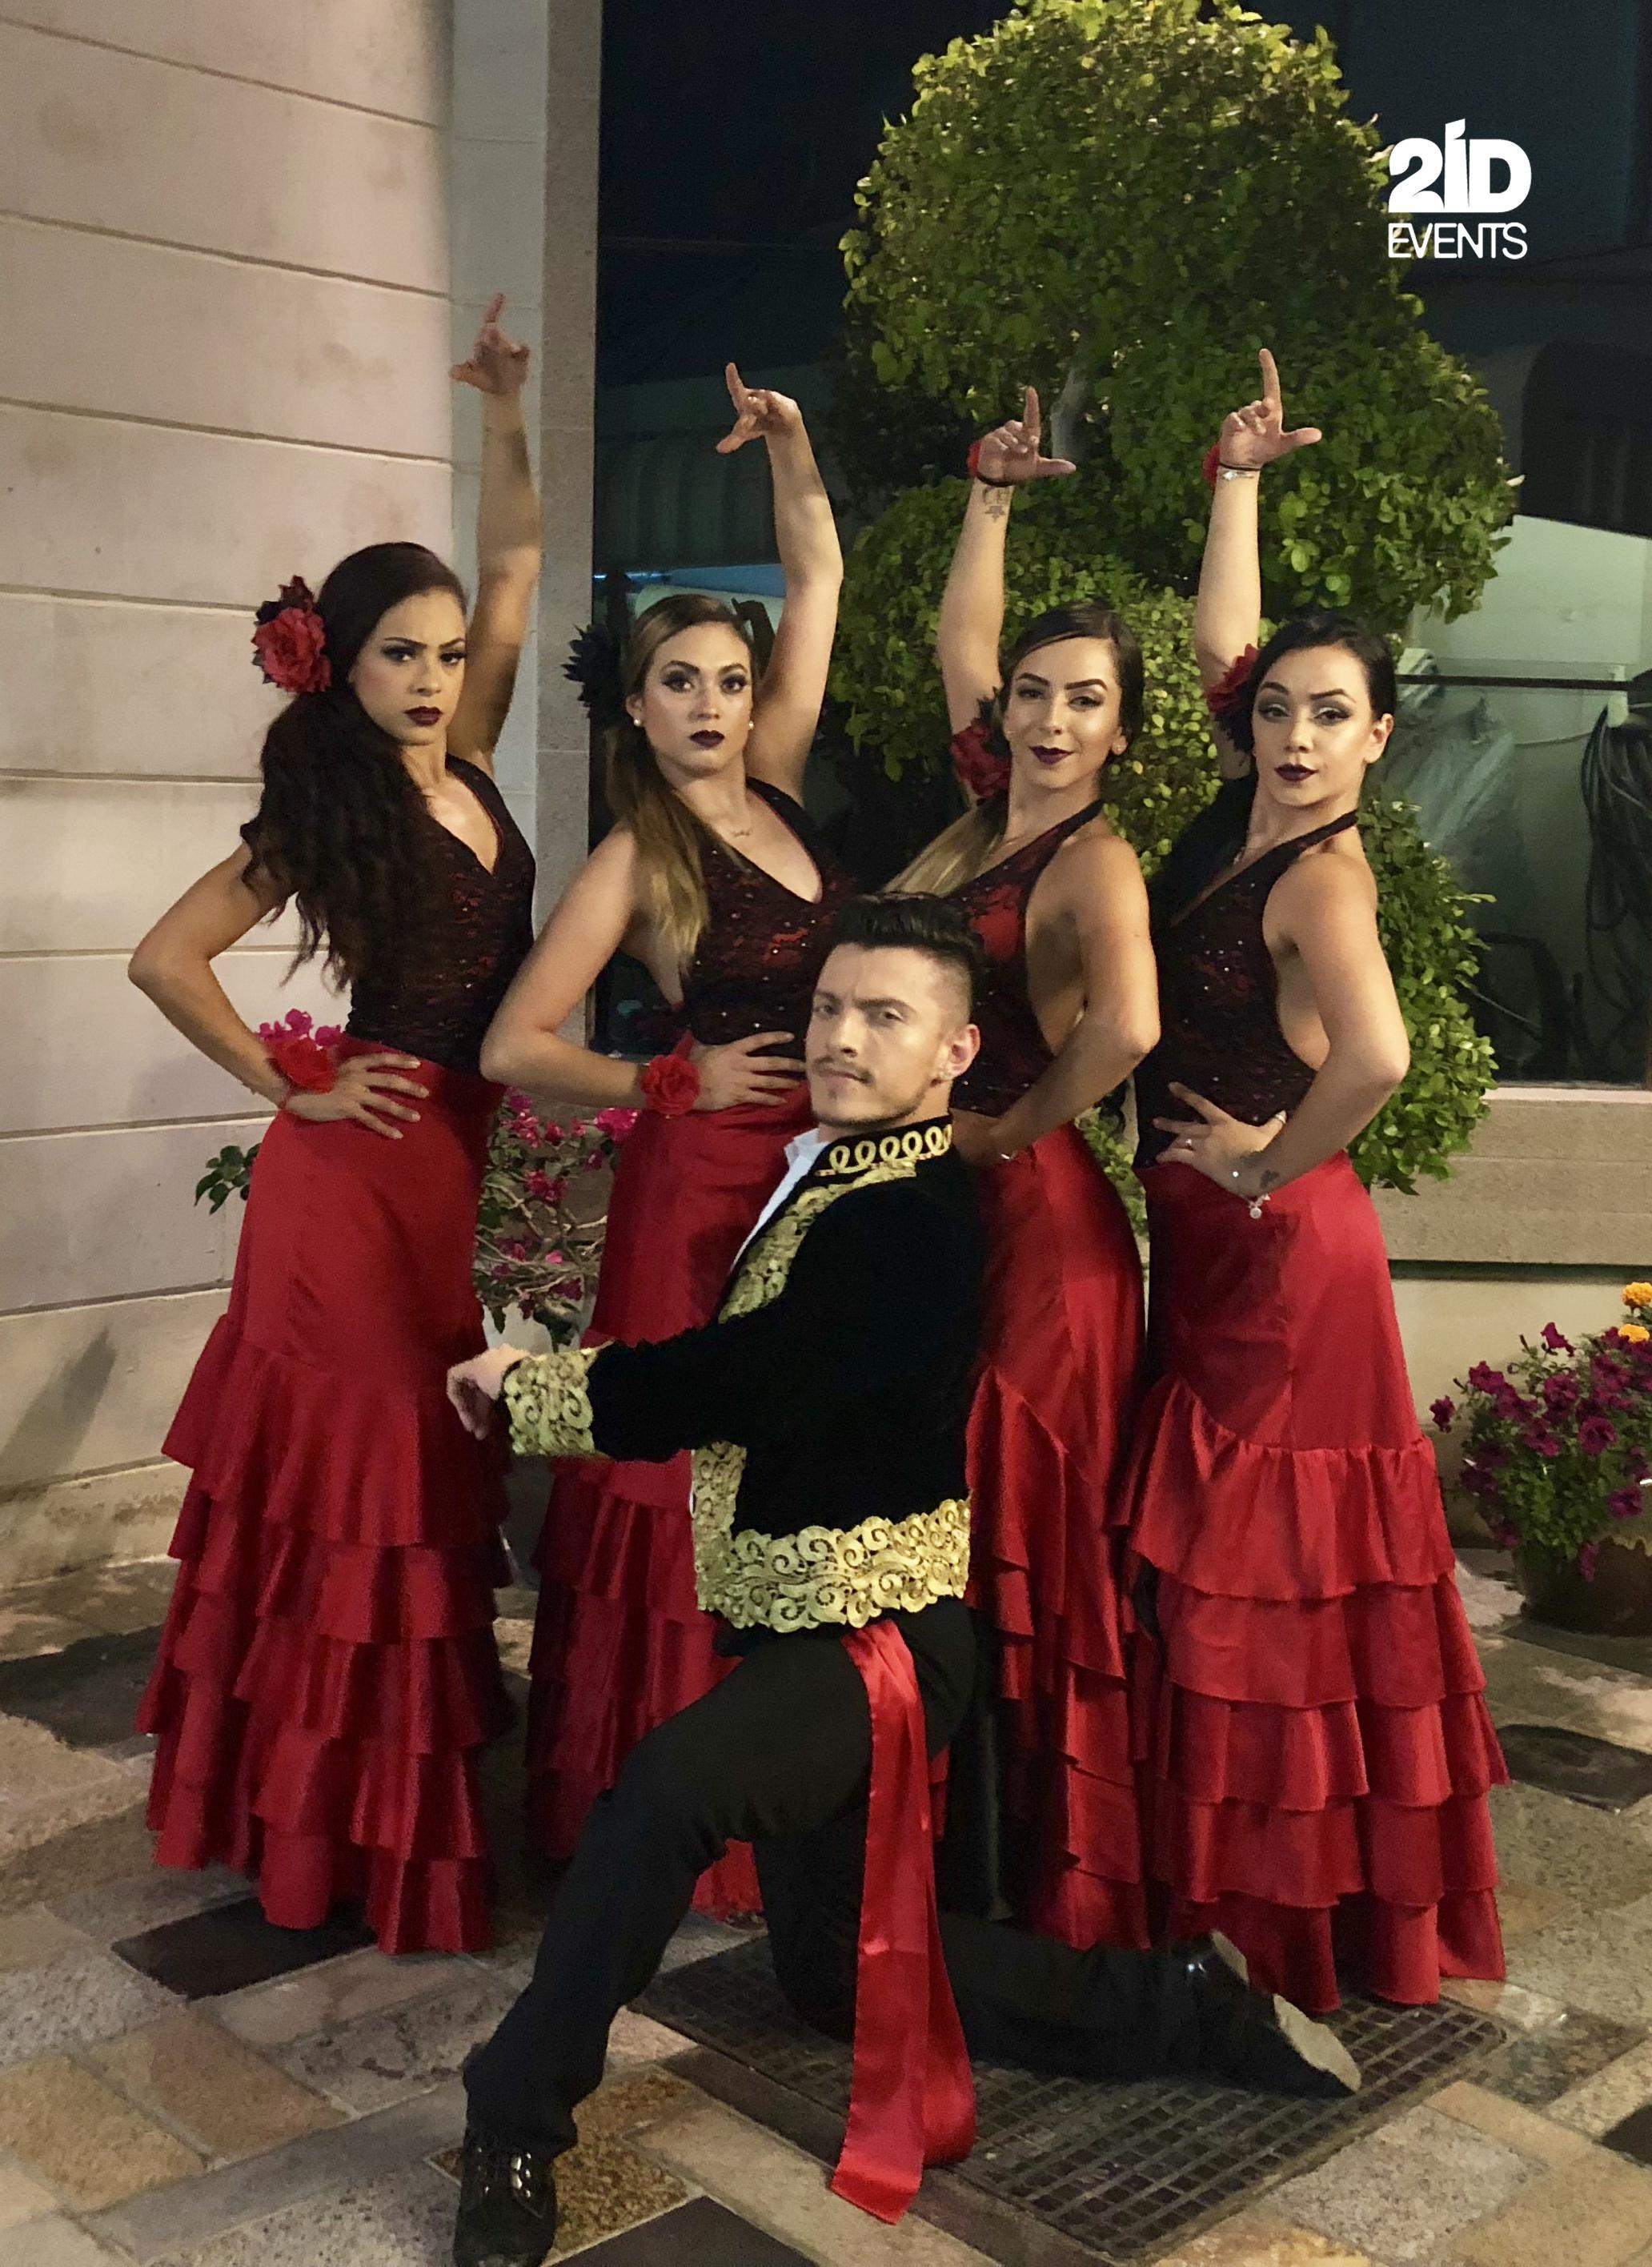 SPANISH DANCE FOR THE PRIVATE EVENT